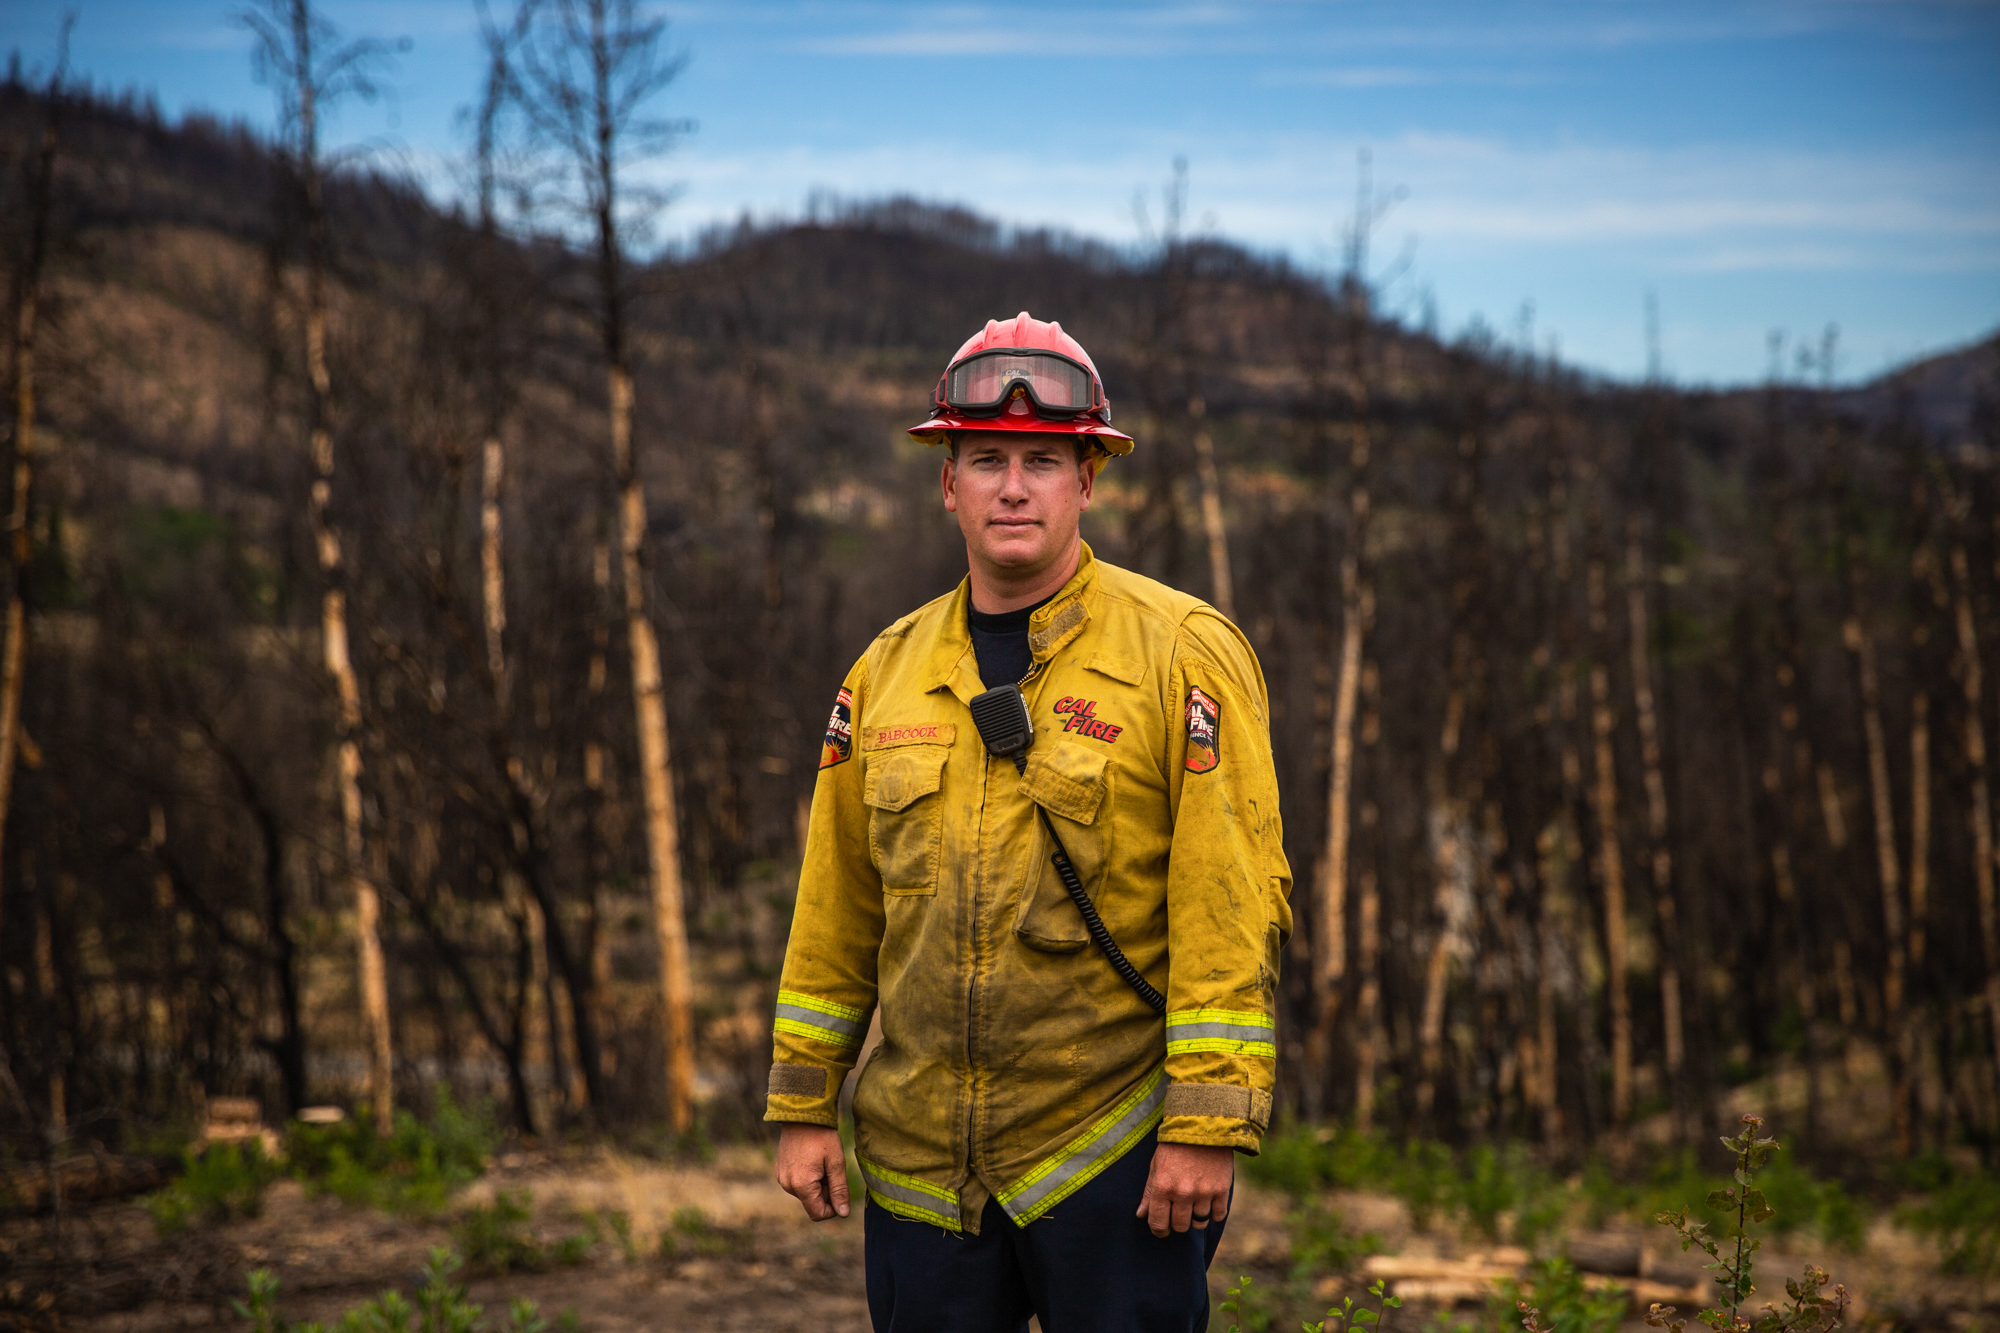 "Greg Babcock - Capt. Greg Babcock leads 26 members of Cal Fire and the California National Guard as they clear areas that burned in the 2018 Carr Fire near Redding, California, hoping to eliminate potential fuel for a future fire. ""As years progress, (fire) seasons have been getting longer,"" he said. ""It seems lately in the last few years, fires have been more devastating."" (Anton L. Delgado/News21)"